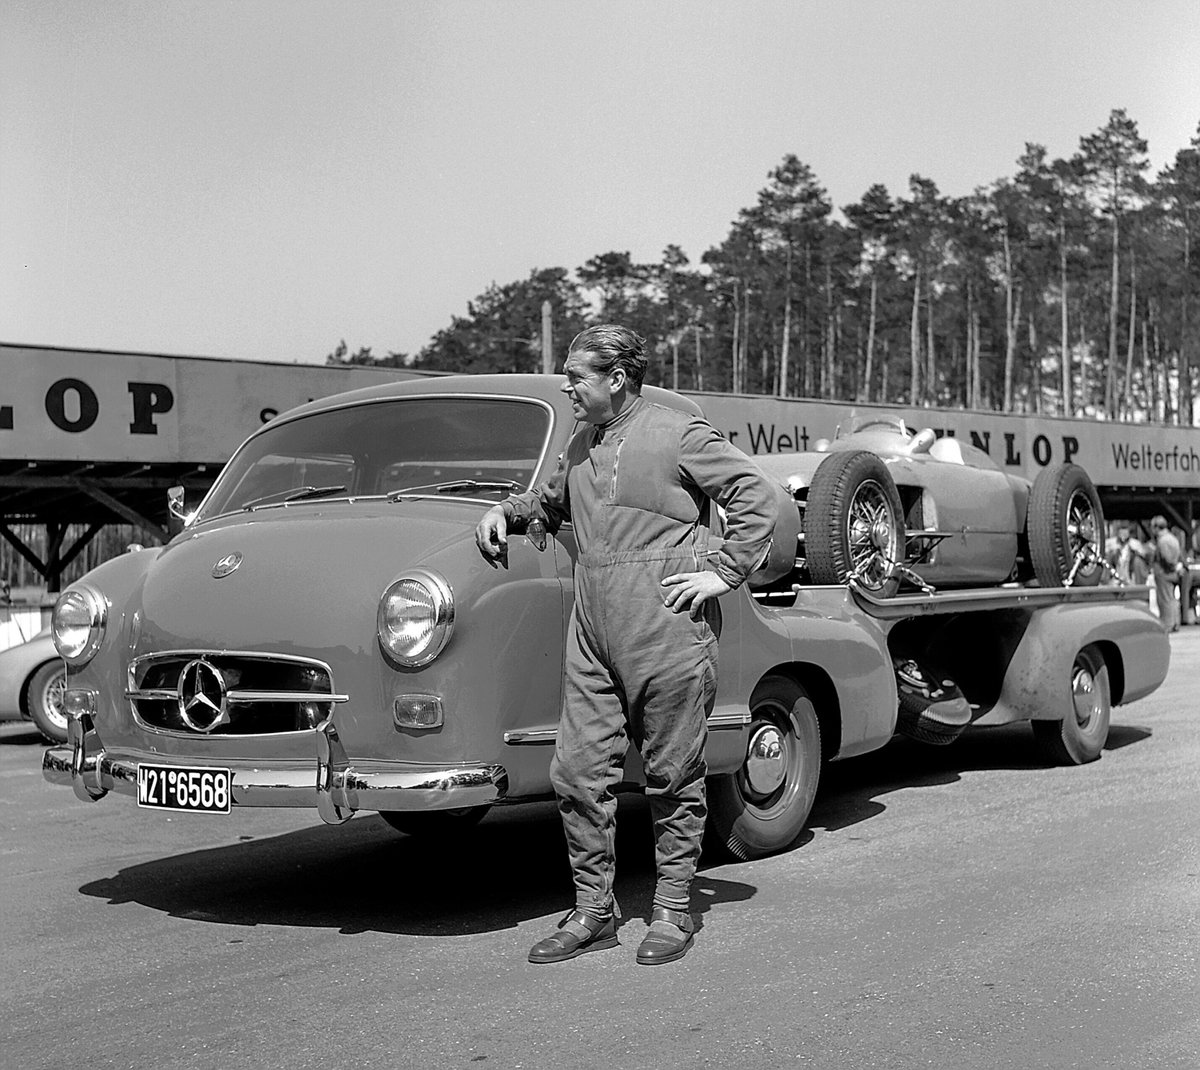 """Legends in 1955: Rudolf Uhlenhaut on the Mercedes-Benz high-speed racing car transporter """"Das blaue Wunder"""" with a W 196 R Monoposto Formula 1 racing car on the loading area. Let yourself be fascinated with us in Stuttgart! #MBmuseum https://t.co/Ybn0pwtVqN"""